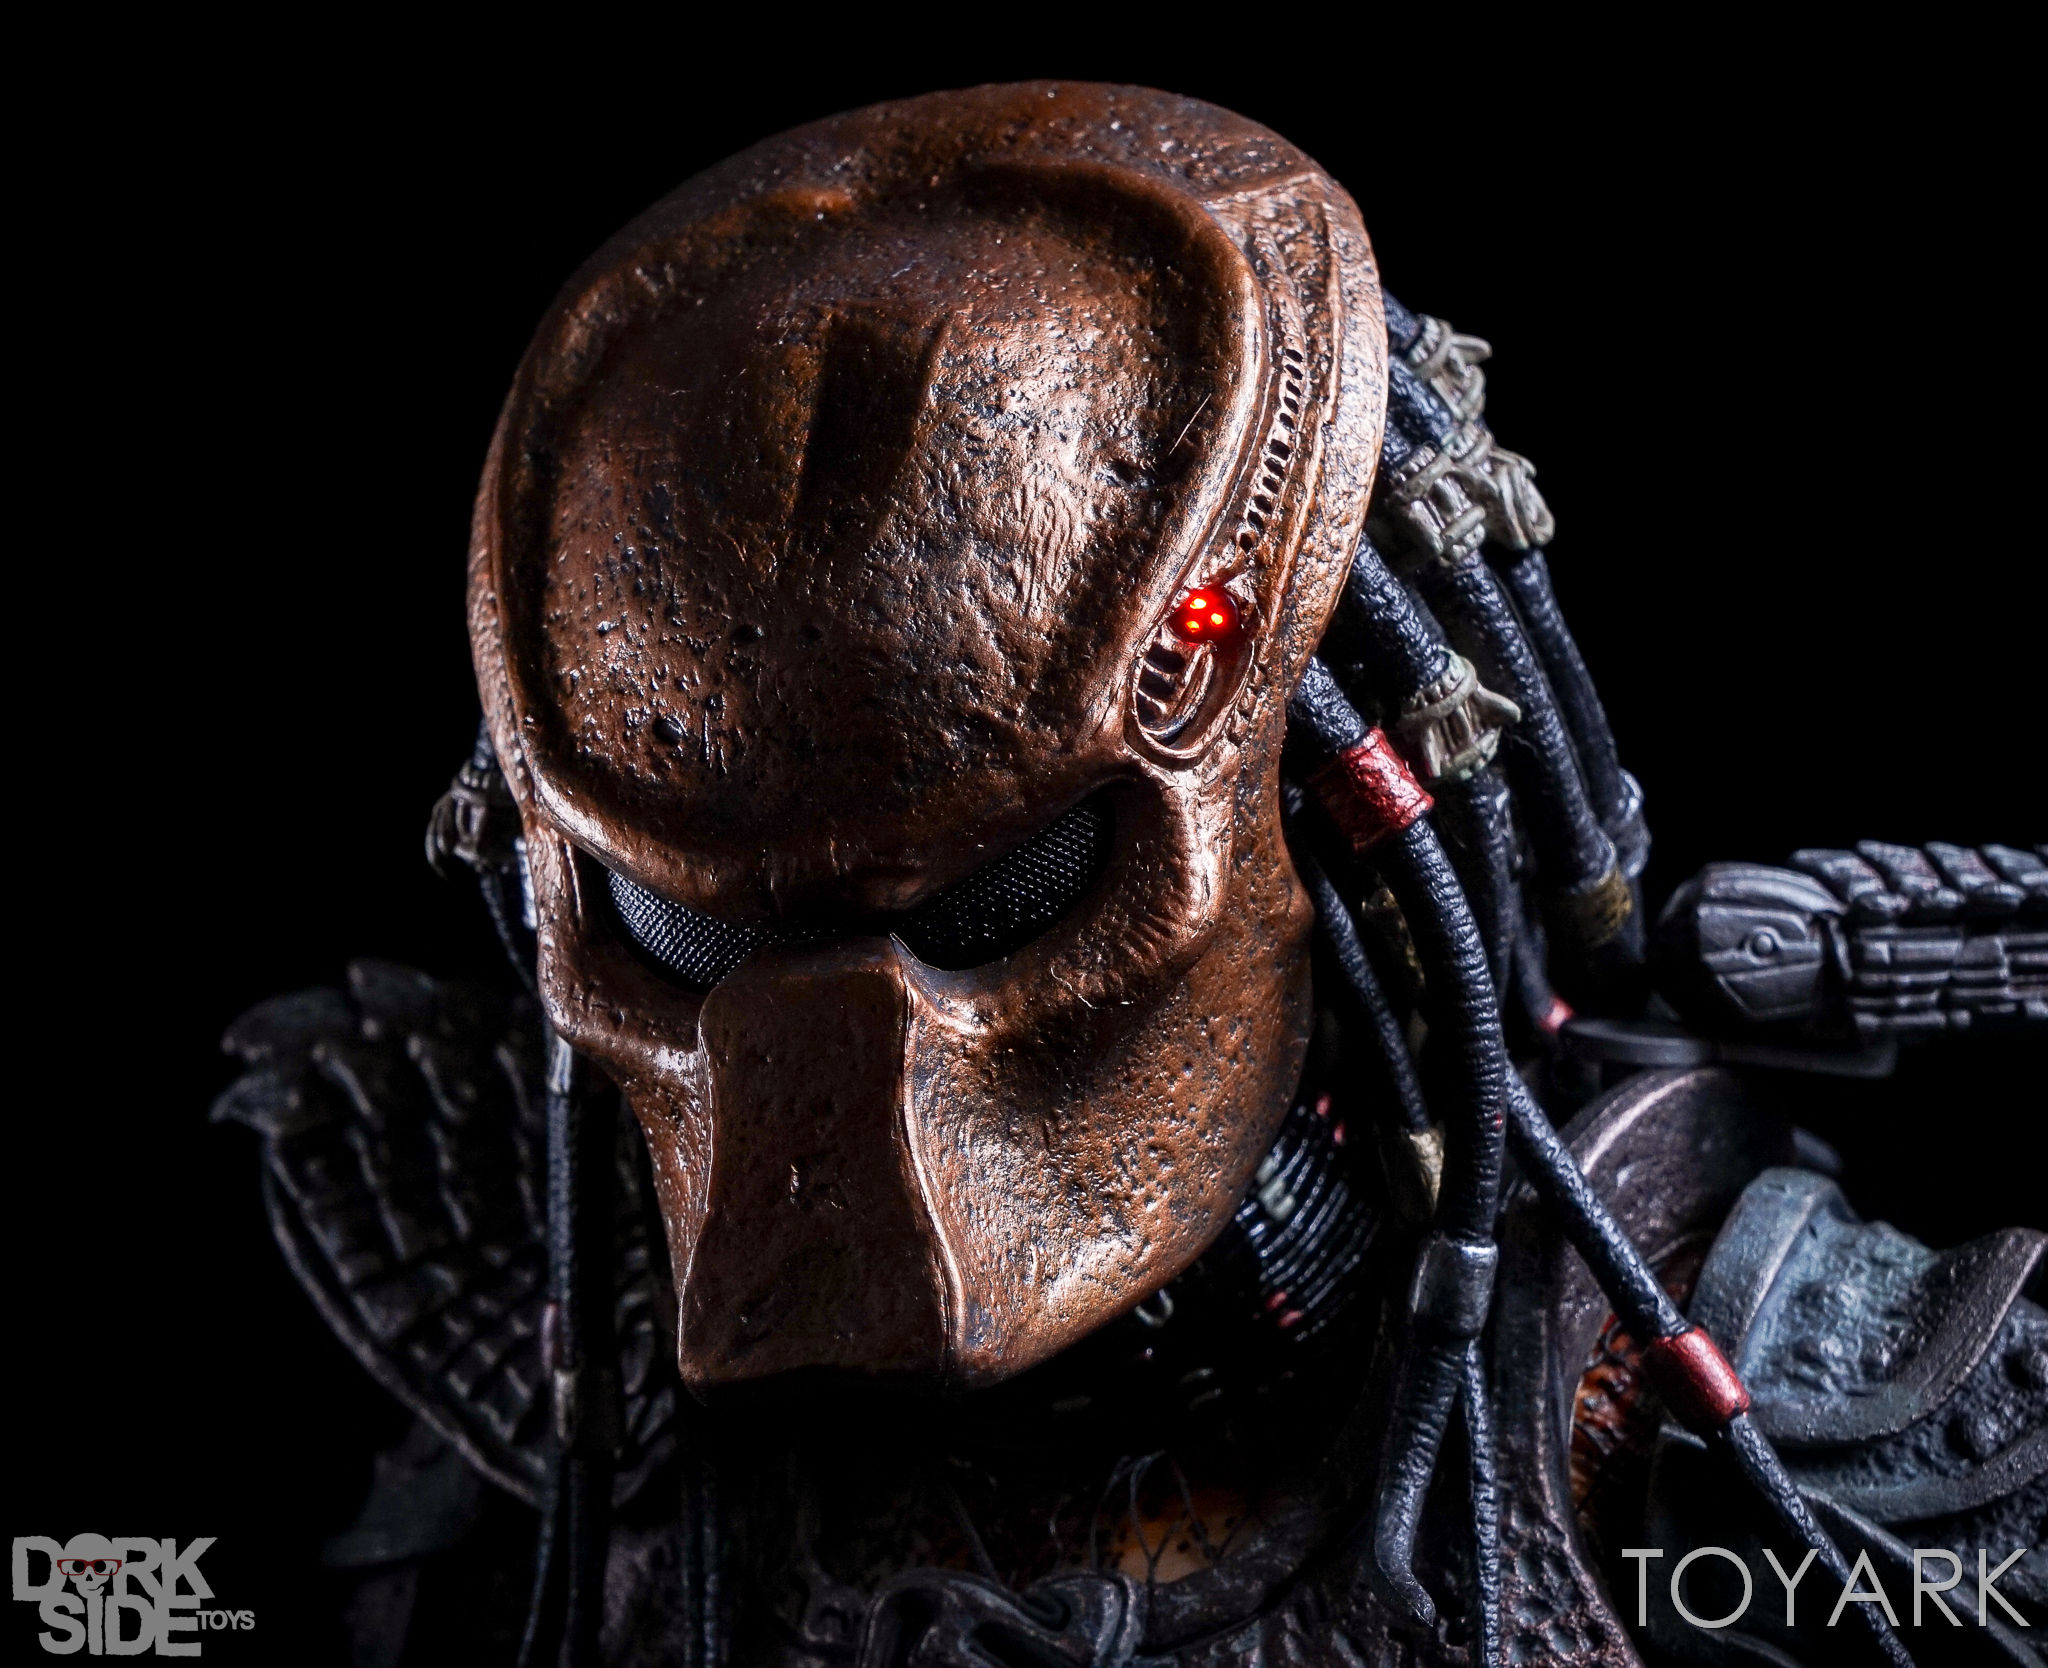 http://news.toyark.com/wp-content/uploads/sites/4/2016/12/NECA-20-Inch-City-Hunter-Predator-021.jpg